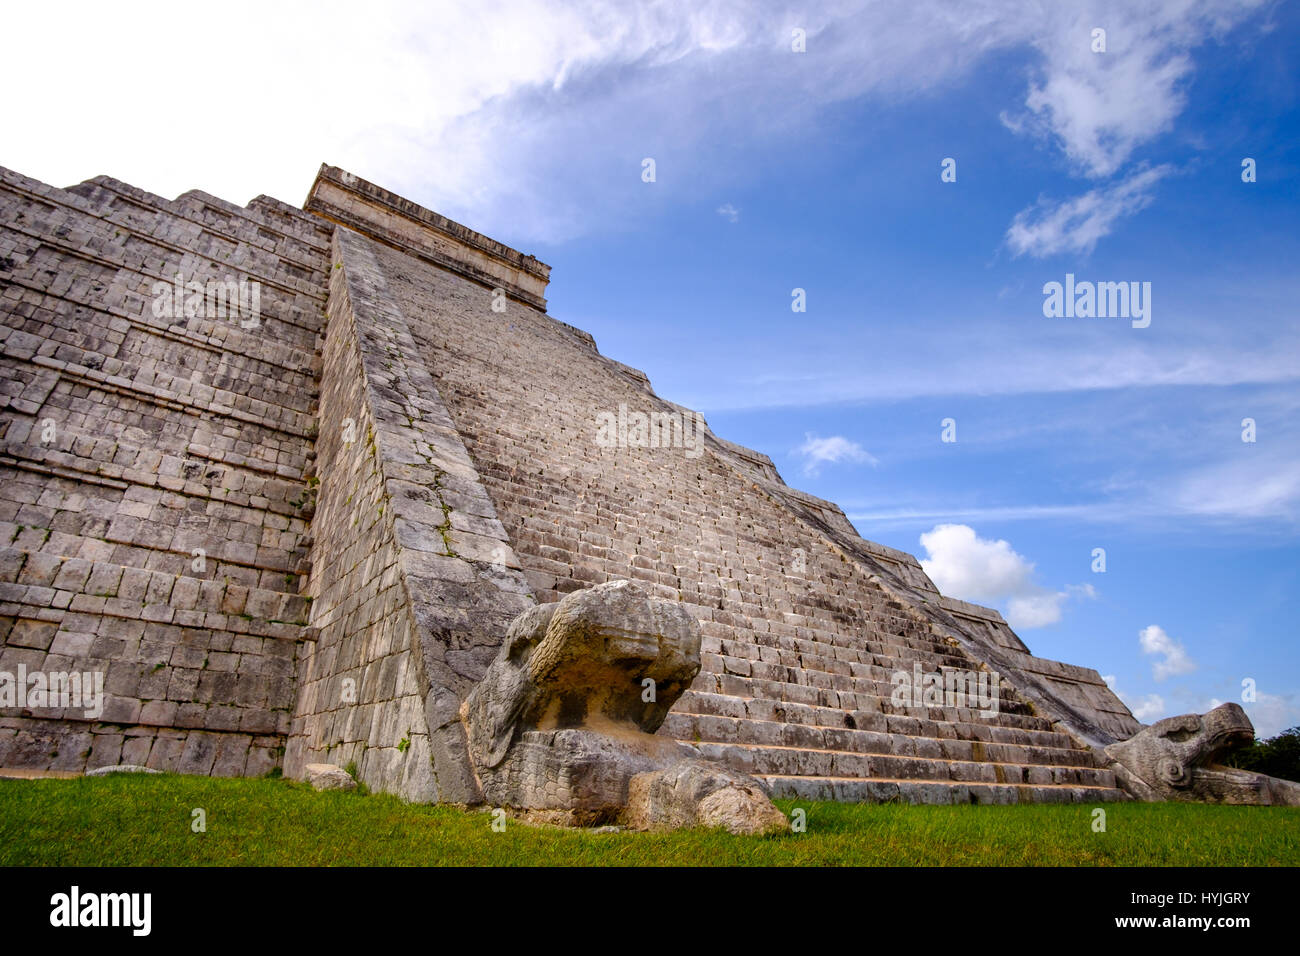 Famous Mayan pyramid in Chichen Itza with stone stairs, Mexico - Stock Image